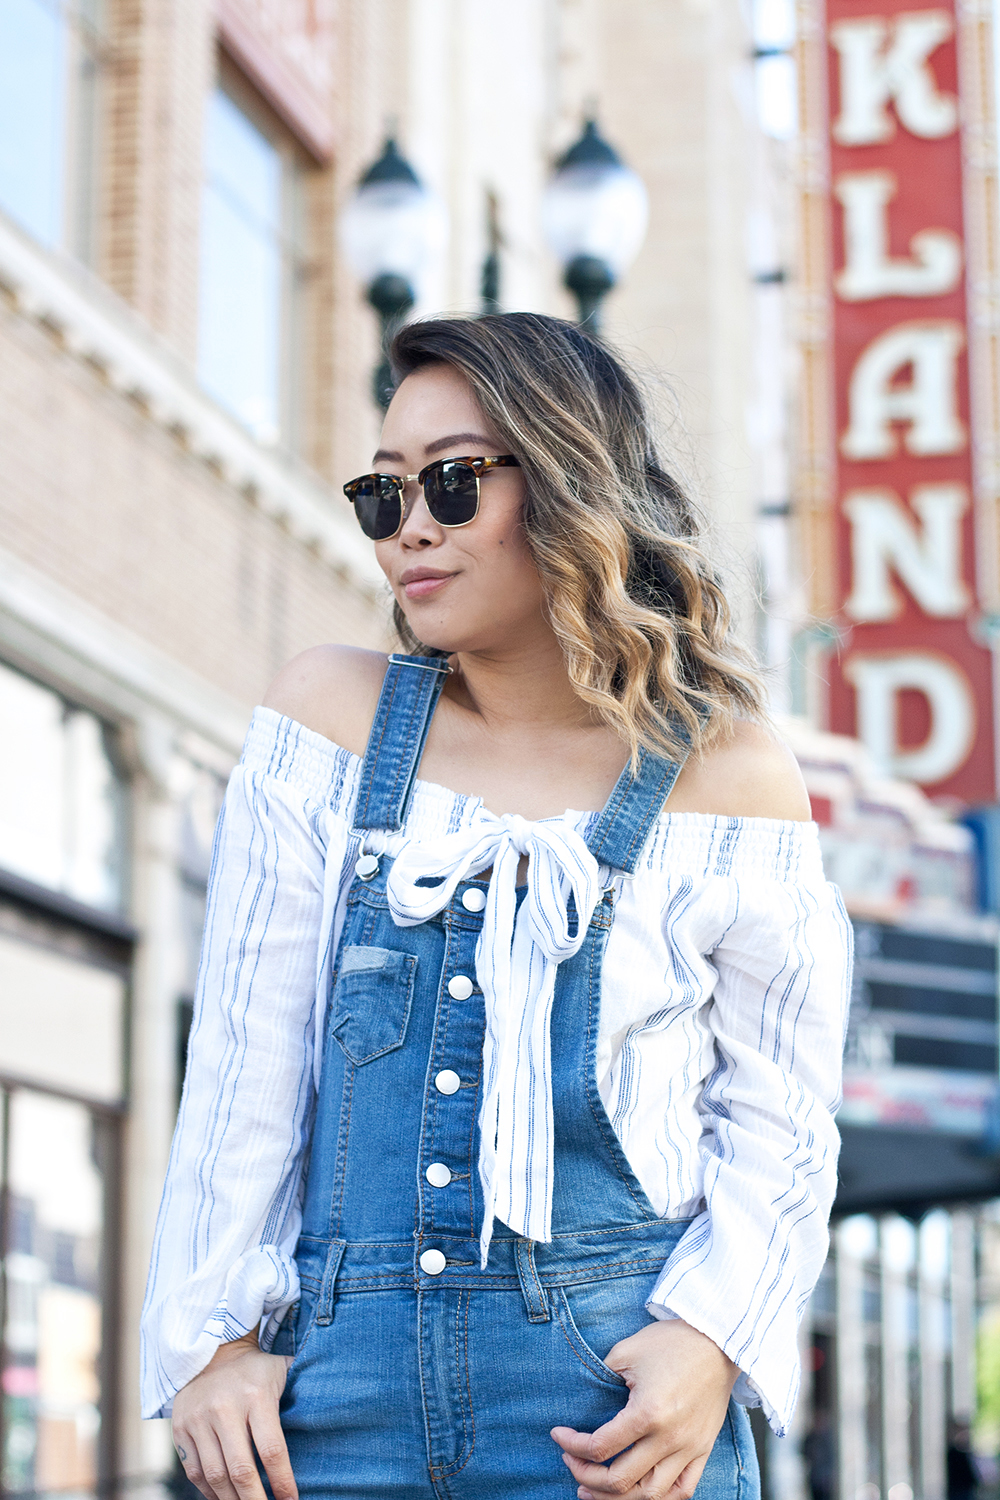 04oakland-fox-denim-overalls-fashion-style